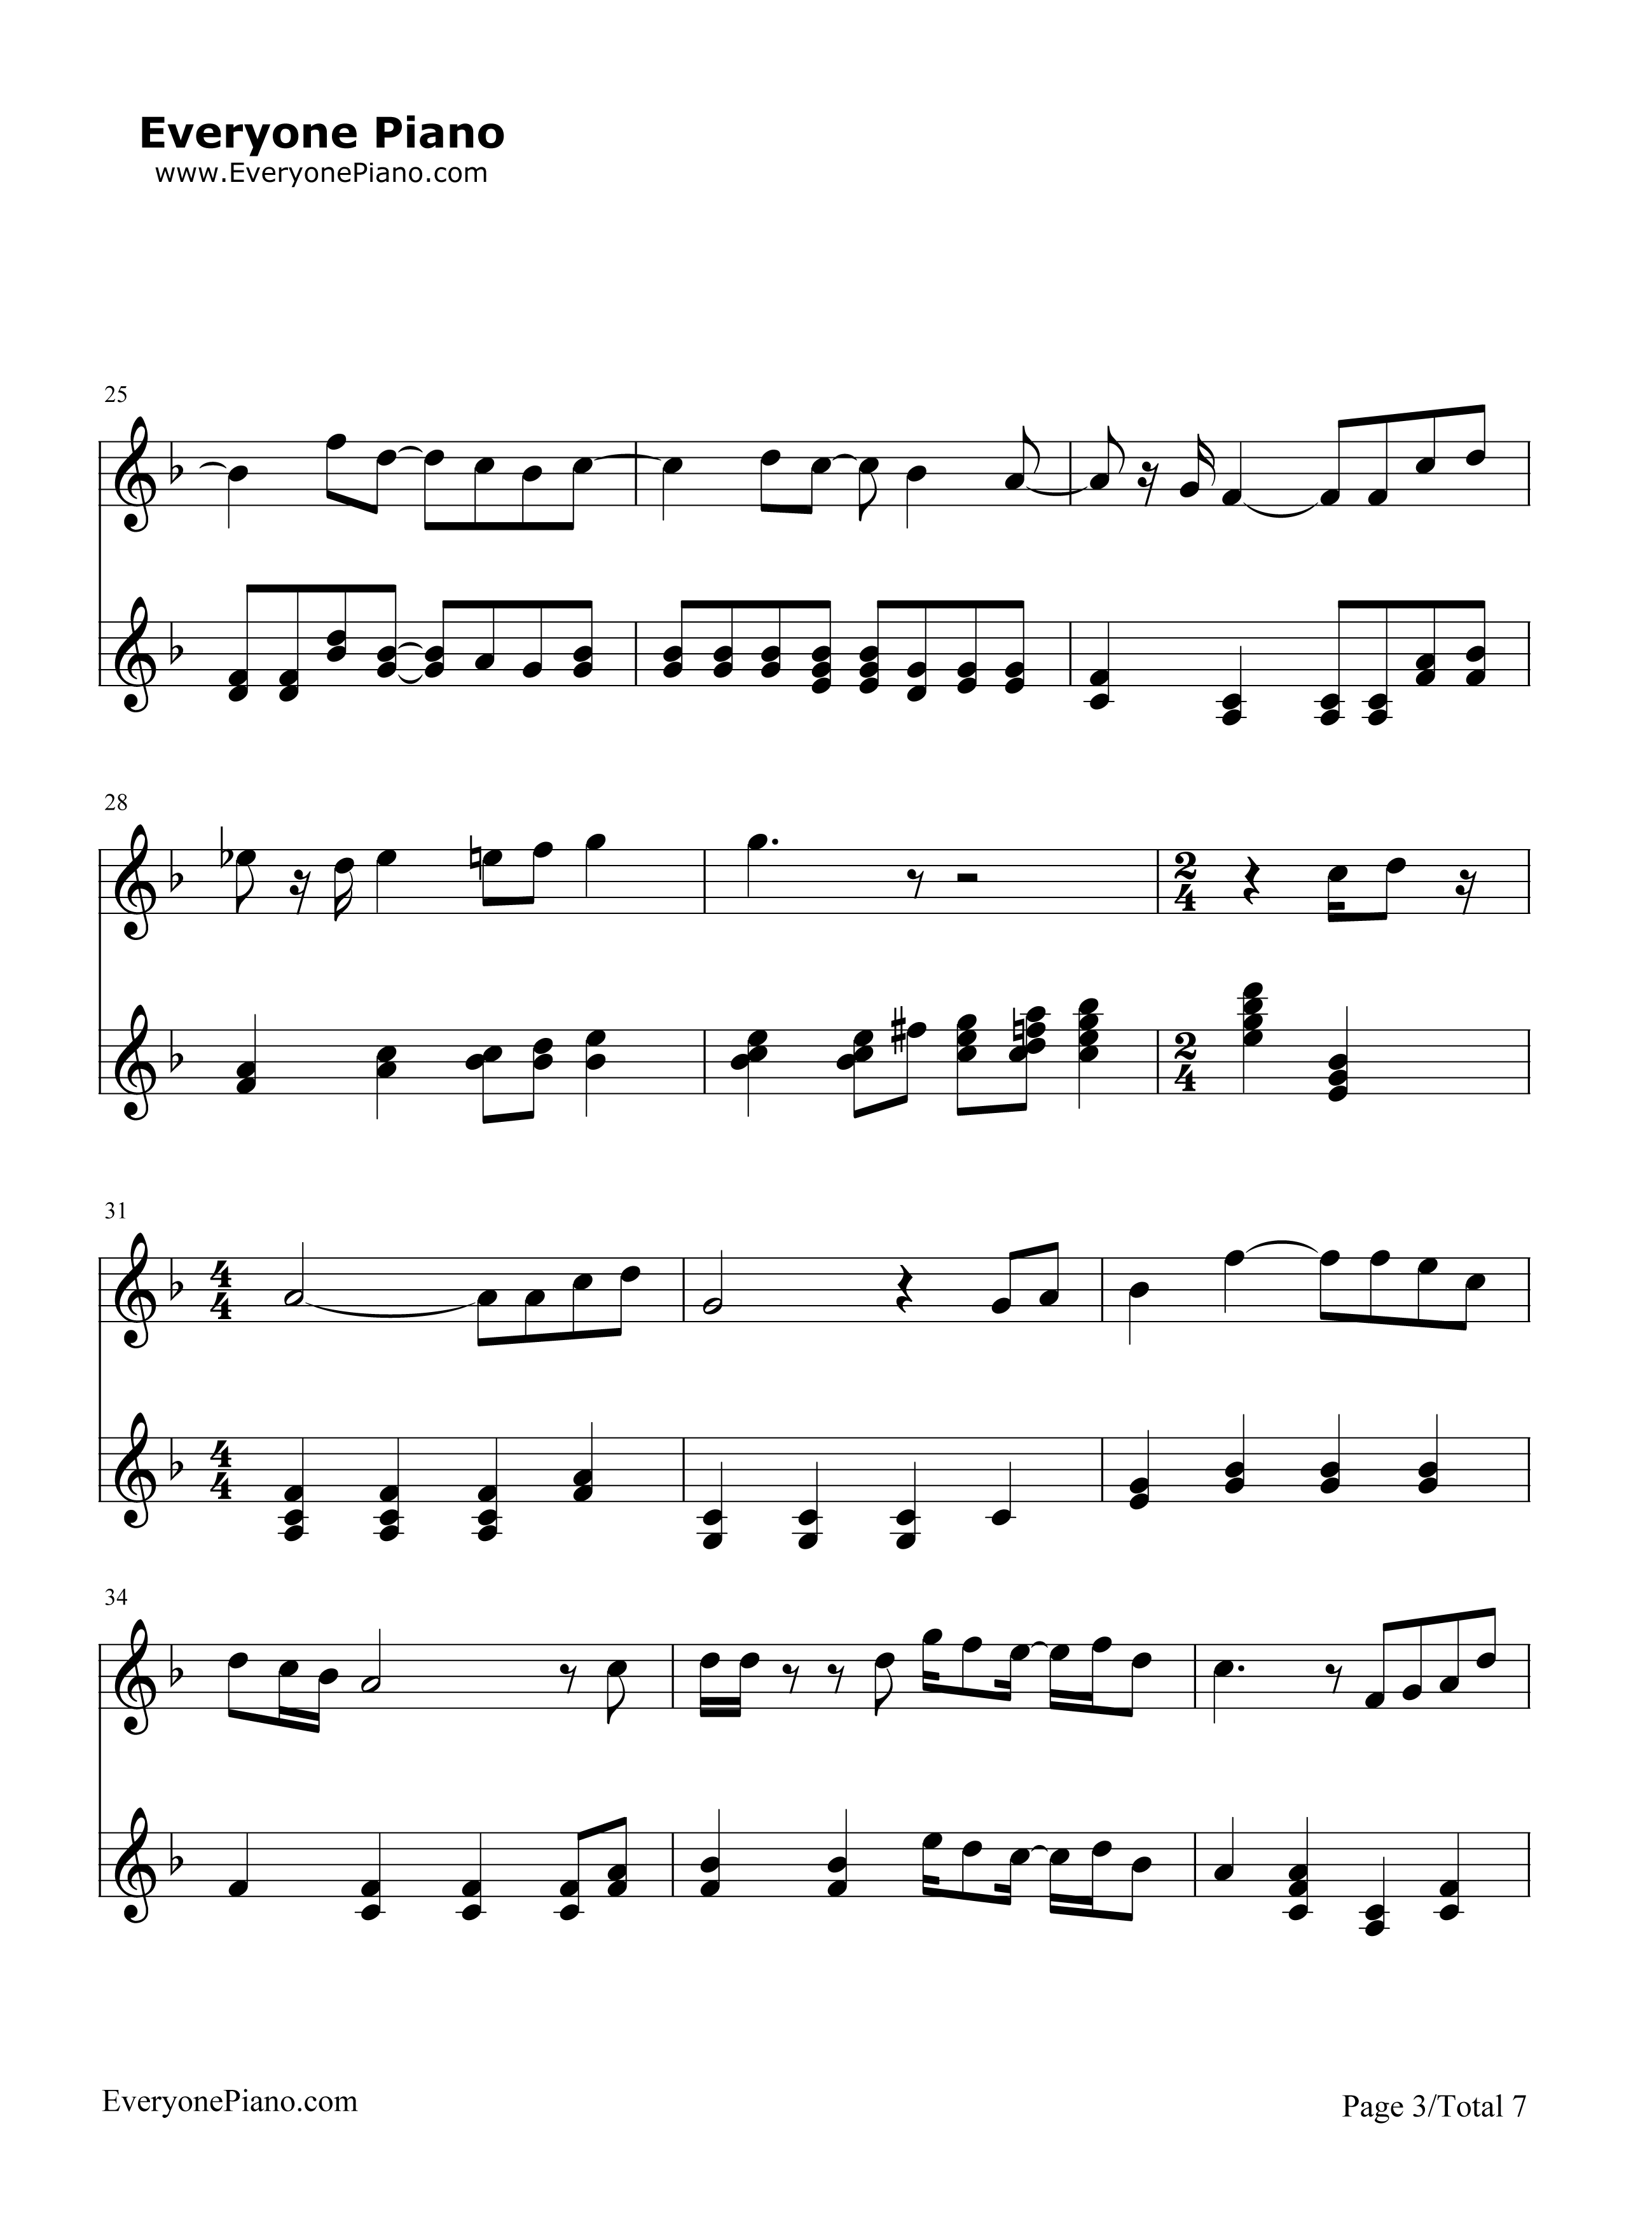 Free Hey Jude-The Beatles Sheet Music Preview 3 Images - Frompo